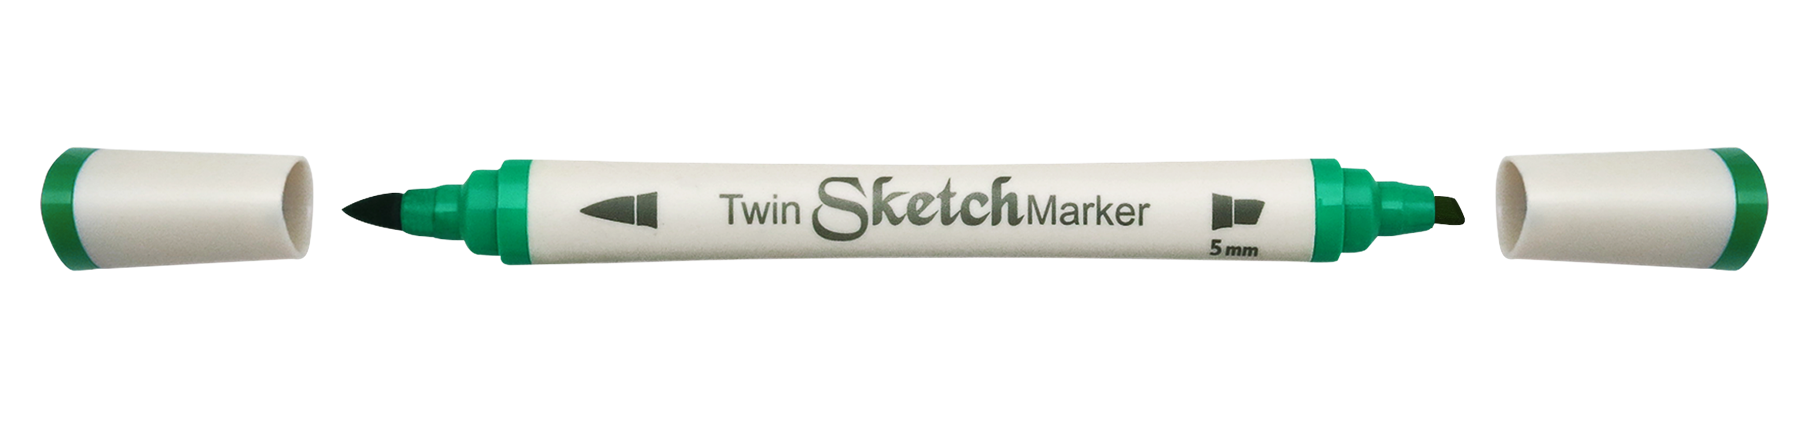 EM6725 Double Tips Sketch Marker